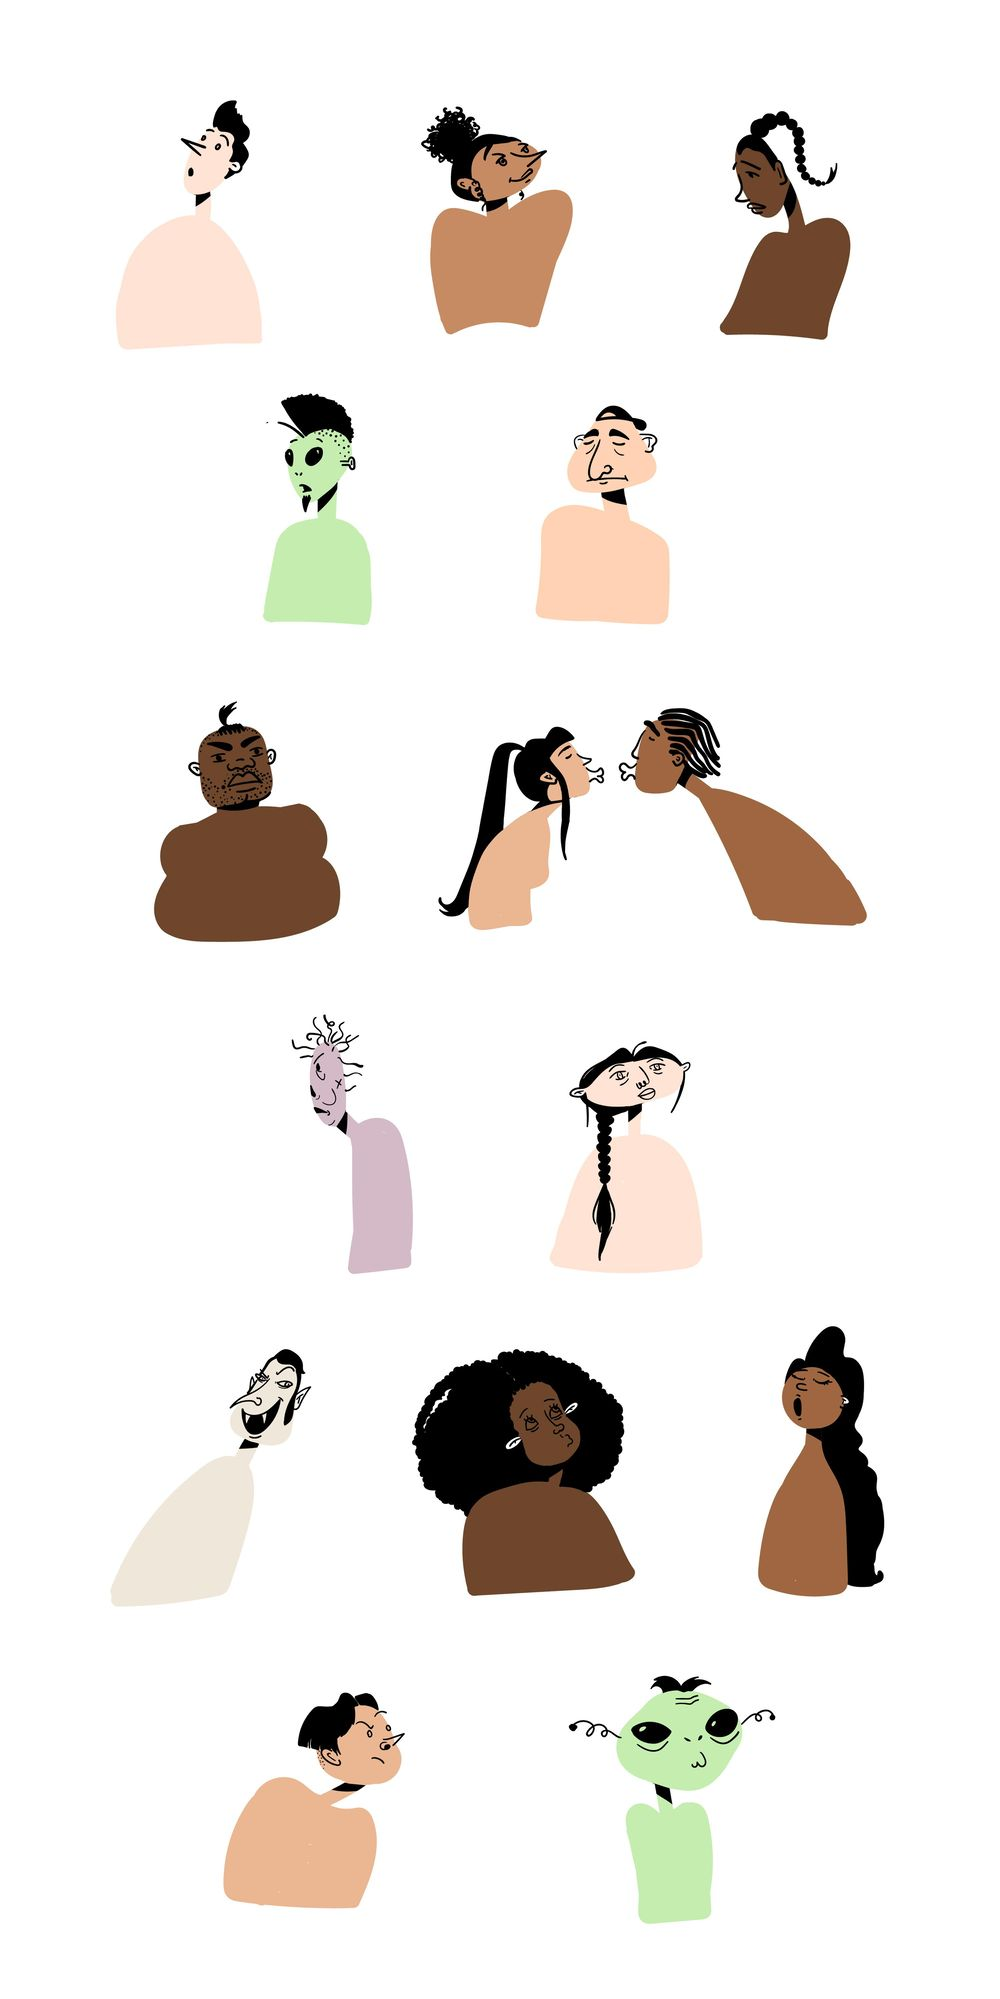 People Illustrations - image 5 - student project